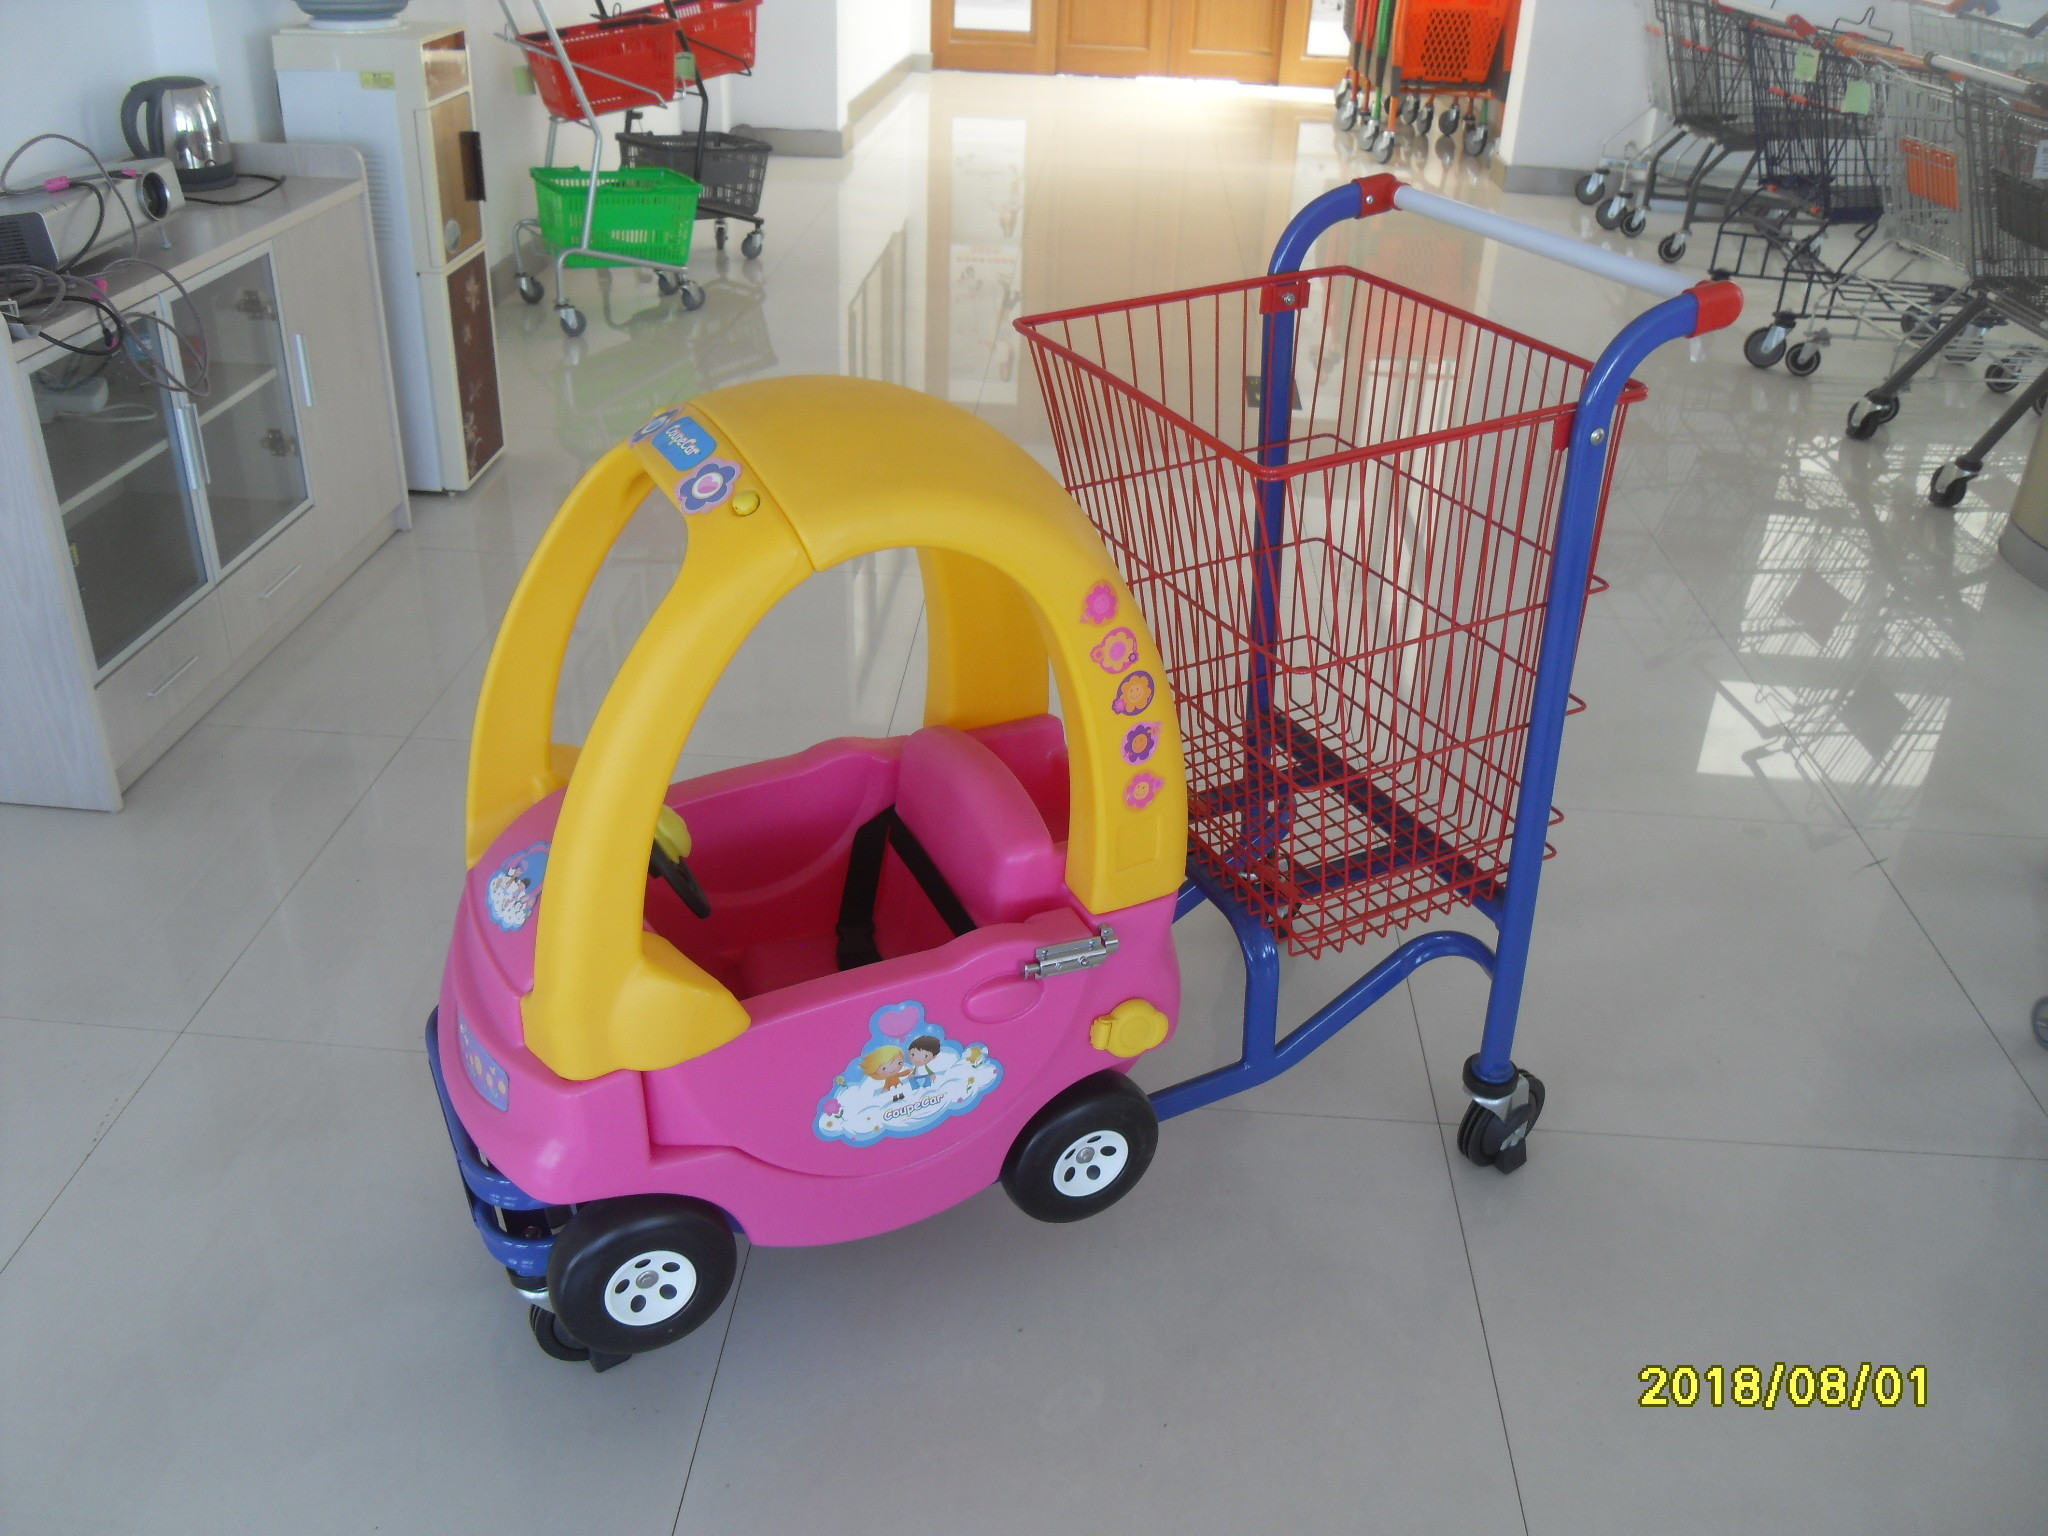 Red Powder Coated childrens shopping cart travelator casters With Toy Car